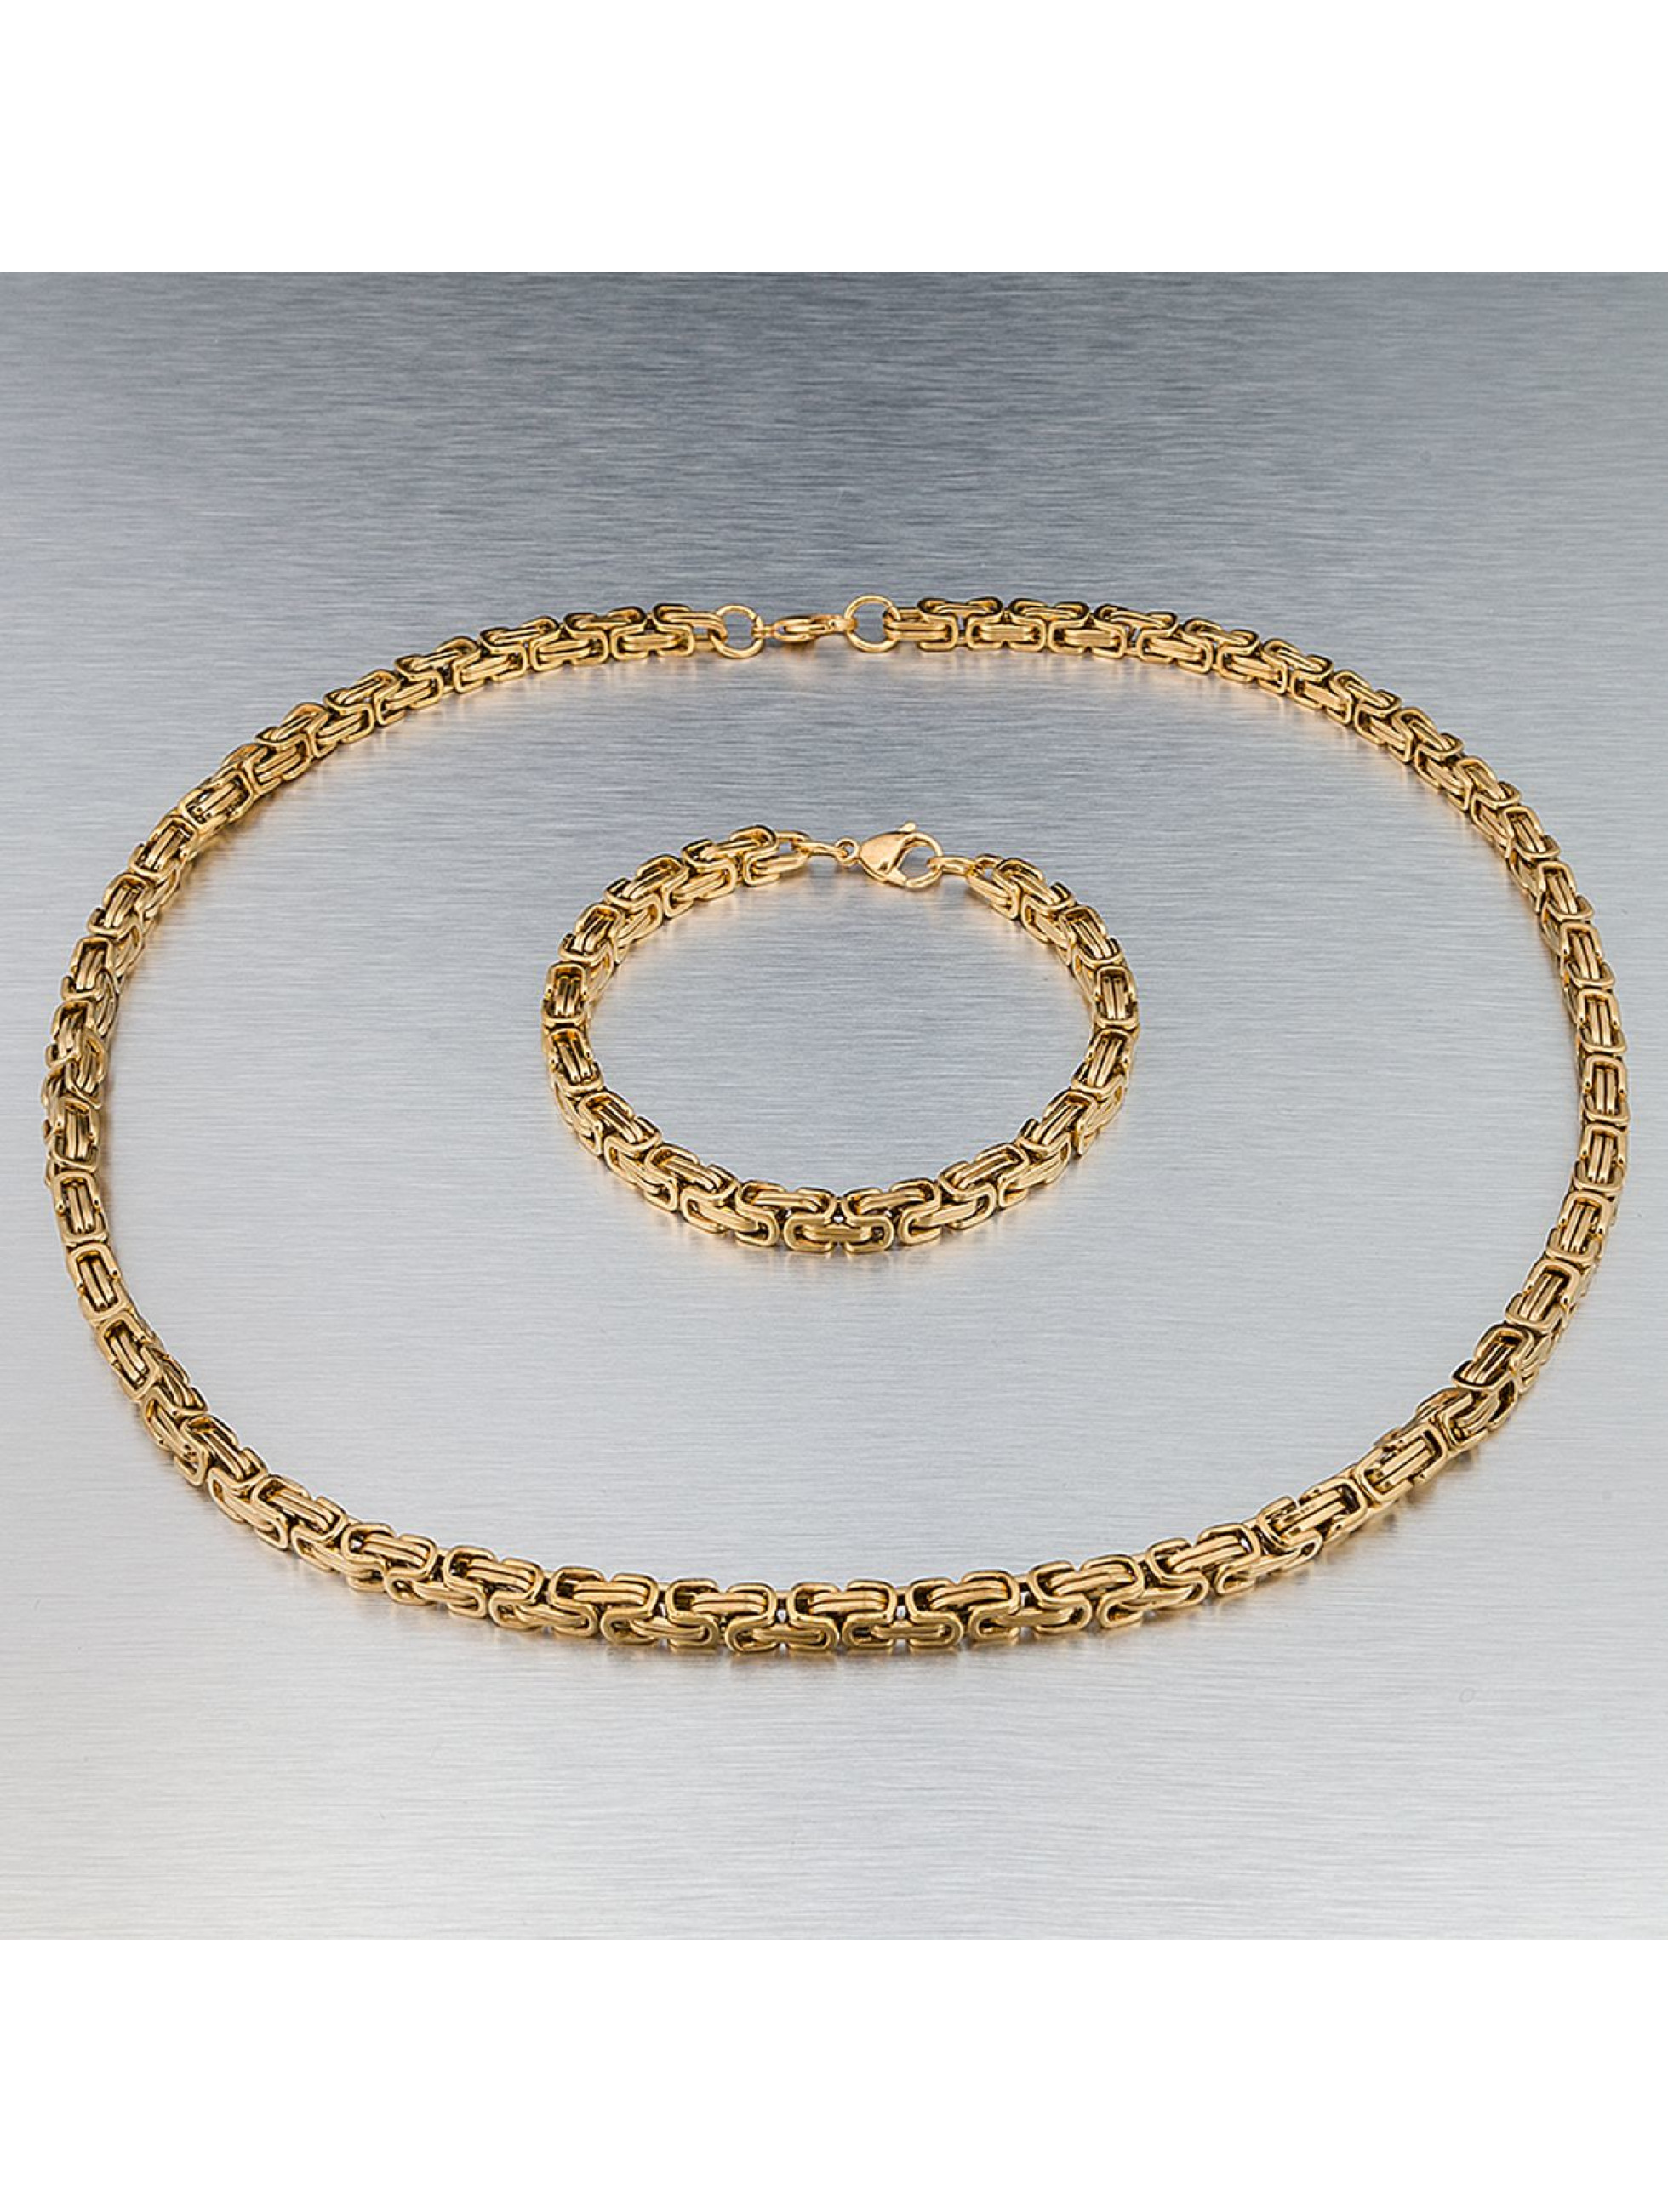 Paris Jewelry Männer,Frauen Kette Bracelet 22cm and Necklace 60cm in goldfarben